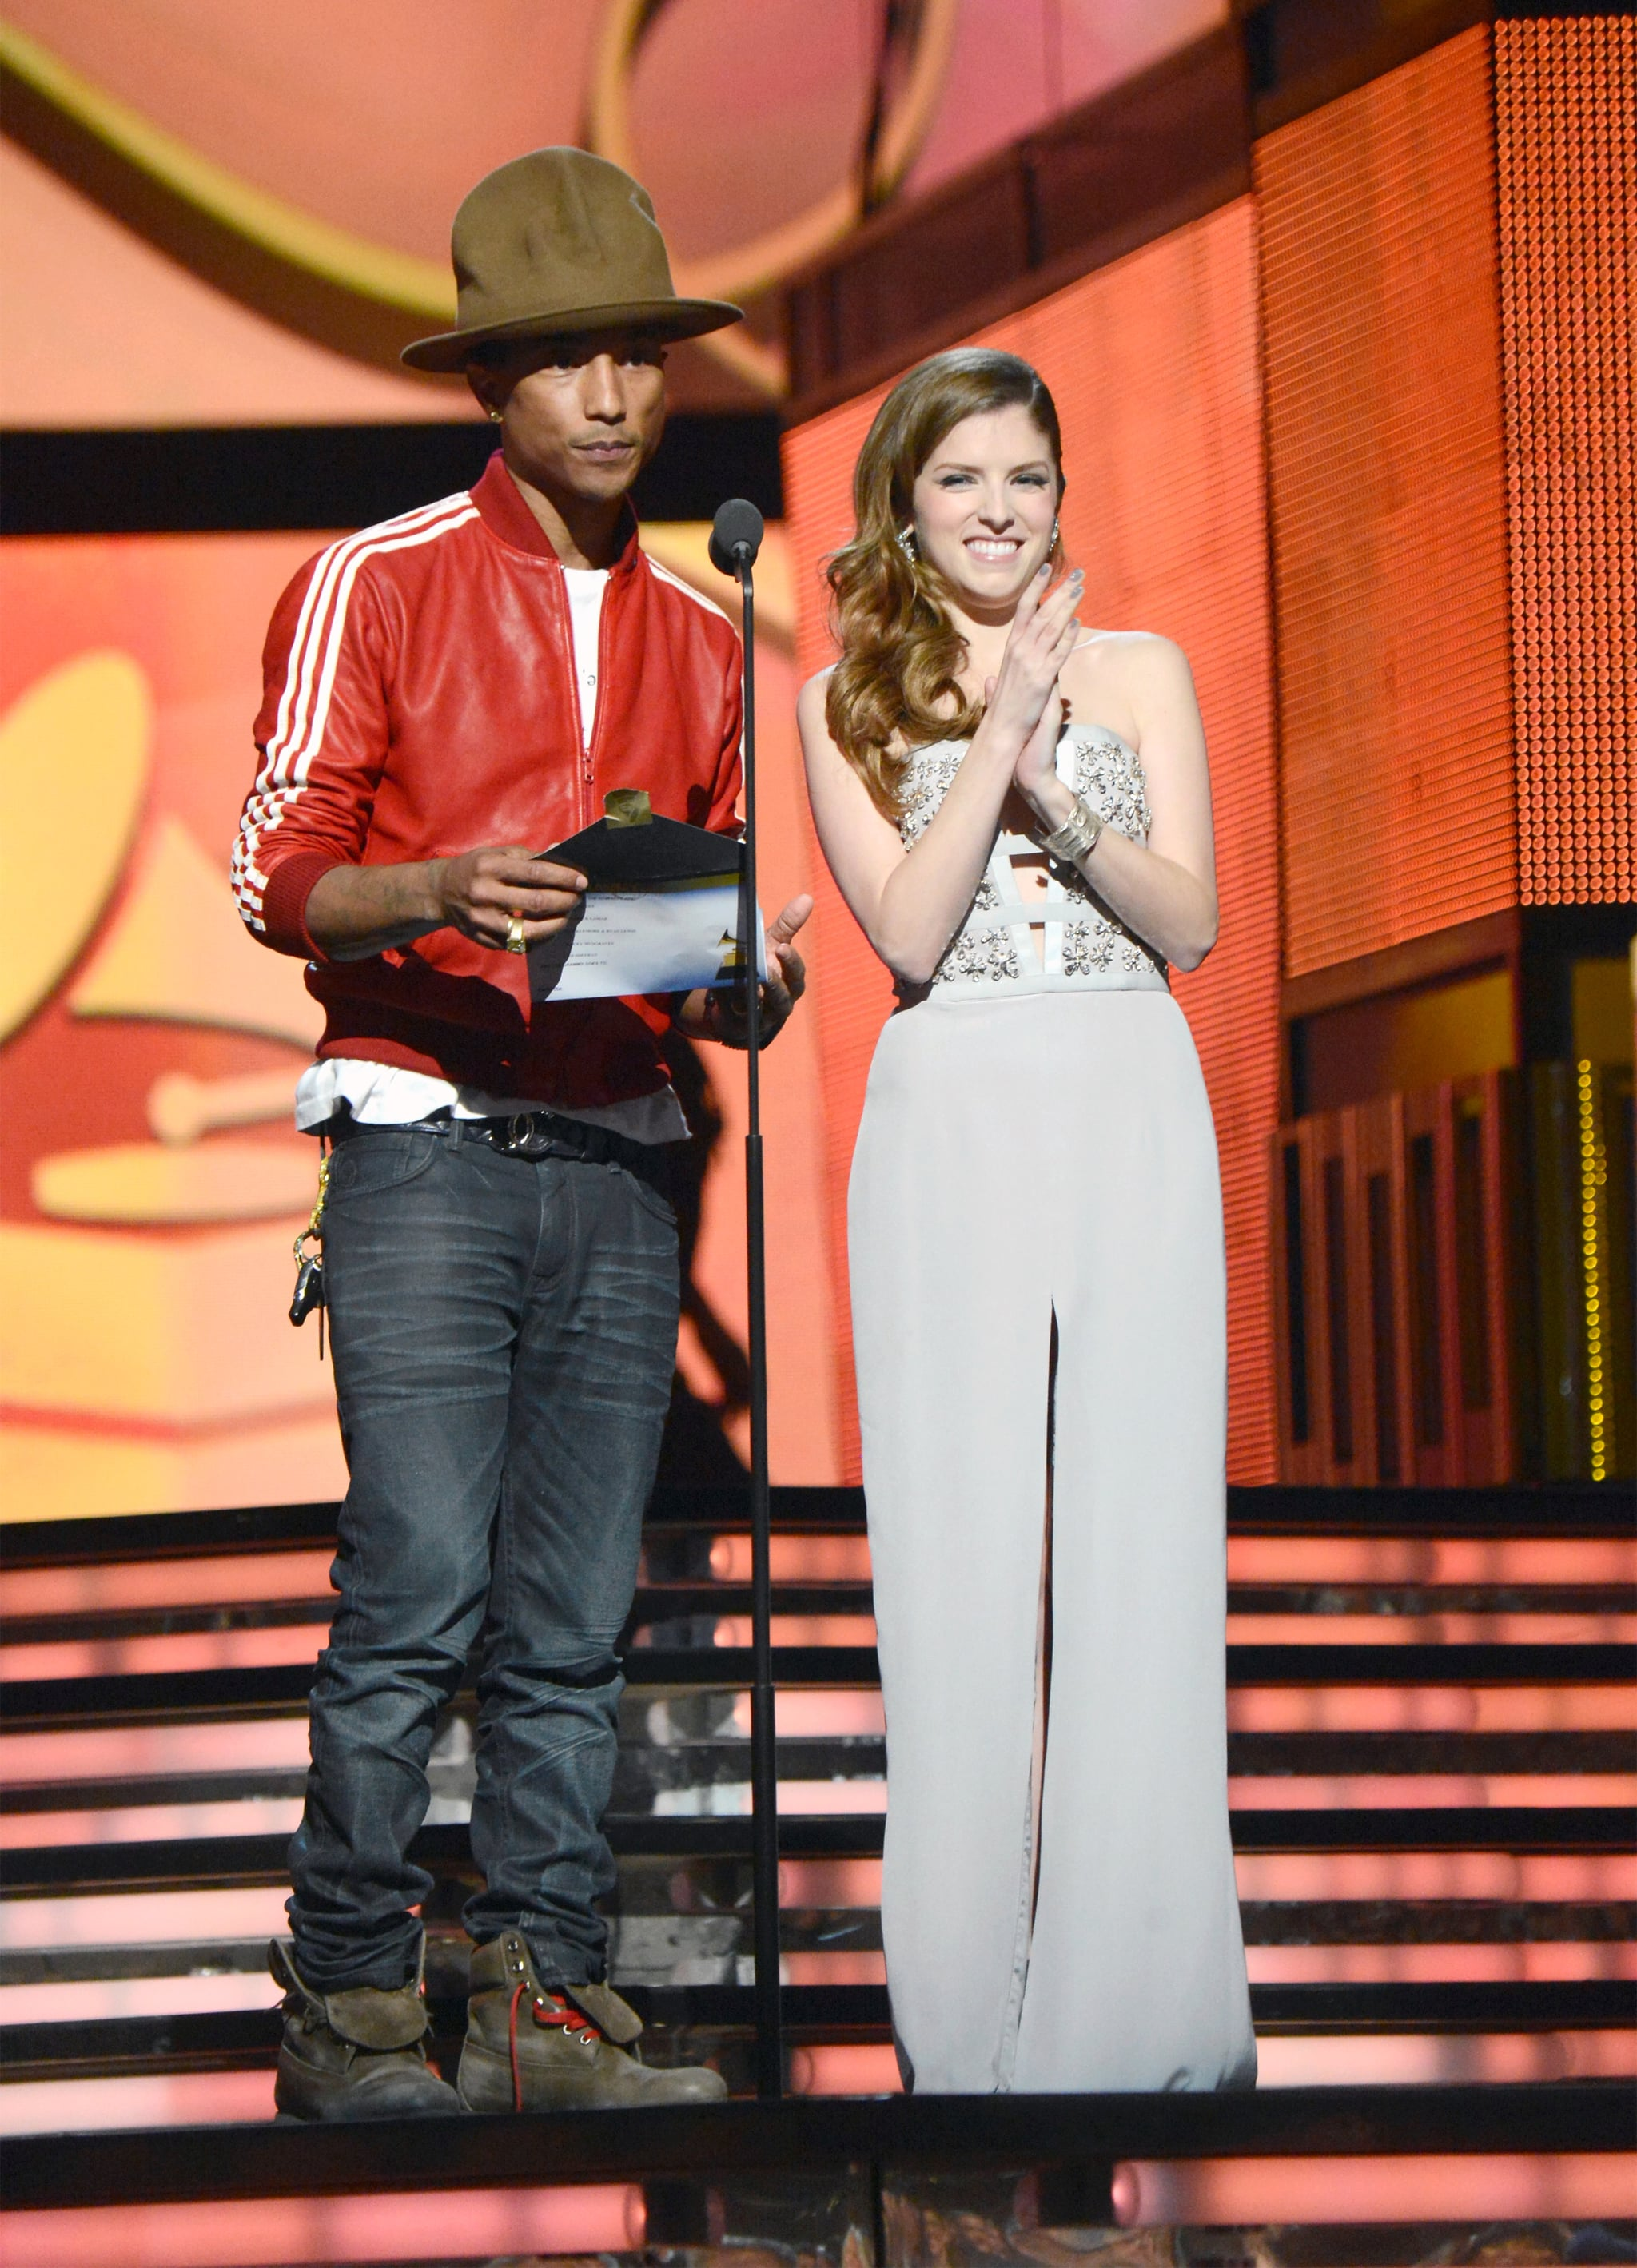 Pharrell's hat looked thrilled to be presenting alongside Anna Kendrick.